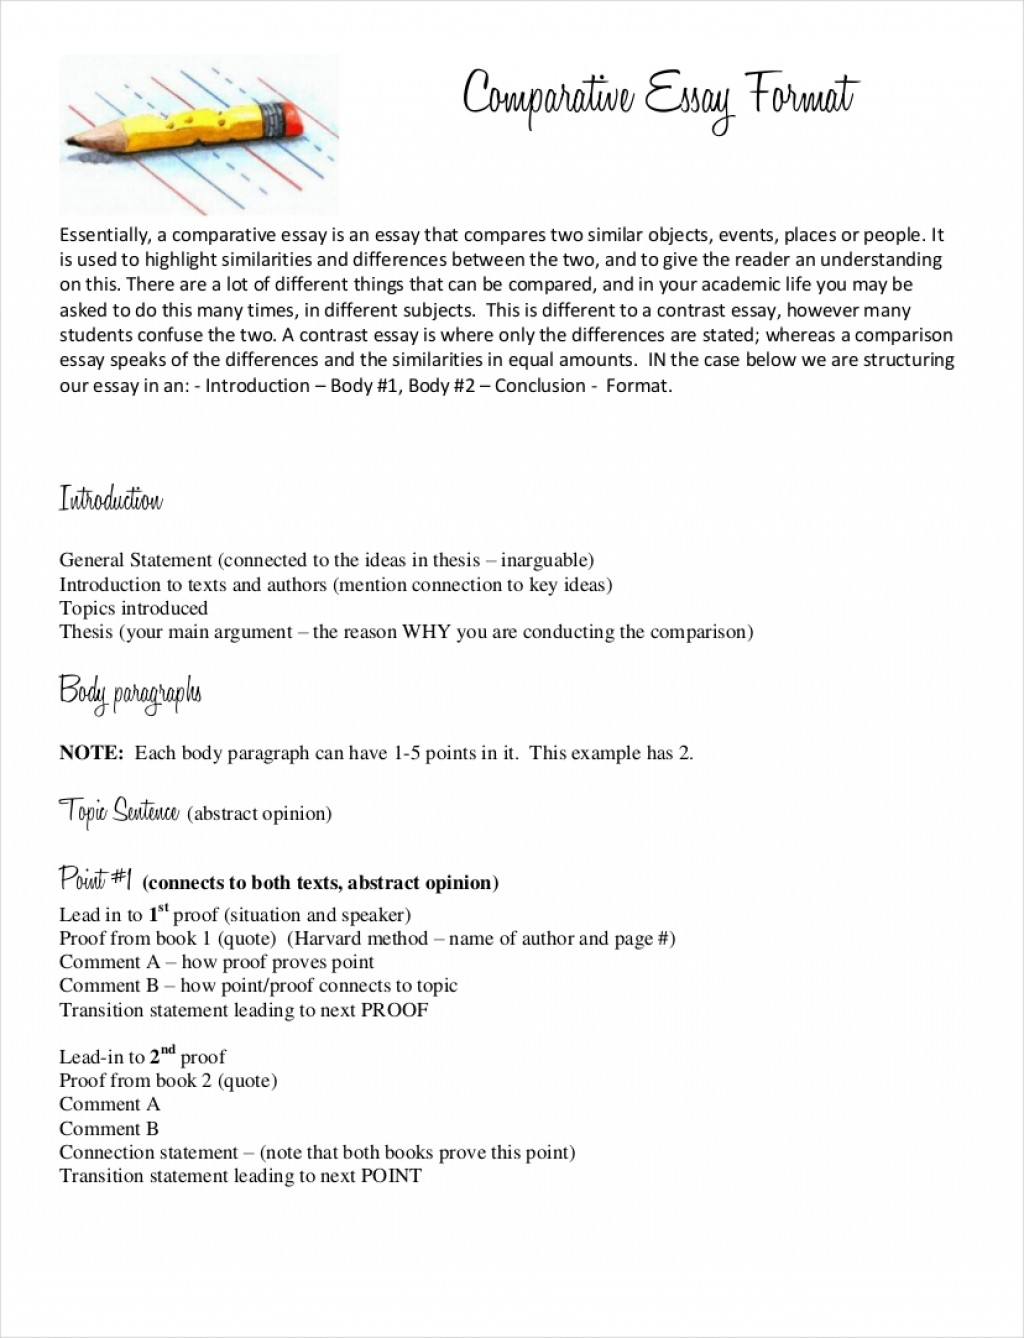 010 Essay Example Comparative Samples Free Pdf Format Download How To Write Poetry Introduction Sample Fo Contrast Vce Incredible A Comparison Outline Compare Ap World History Large